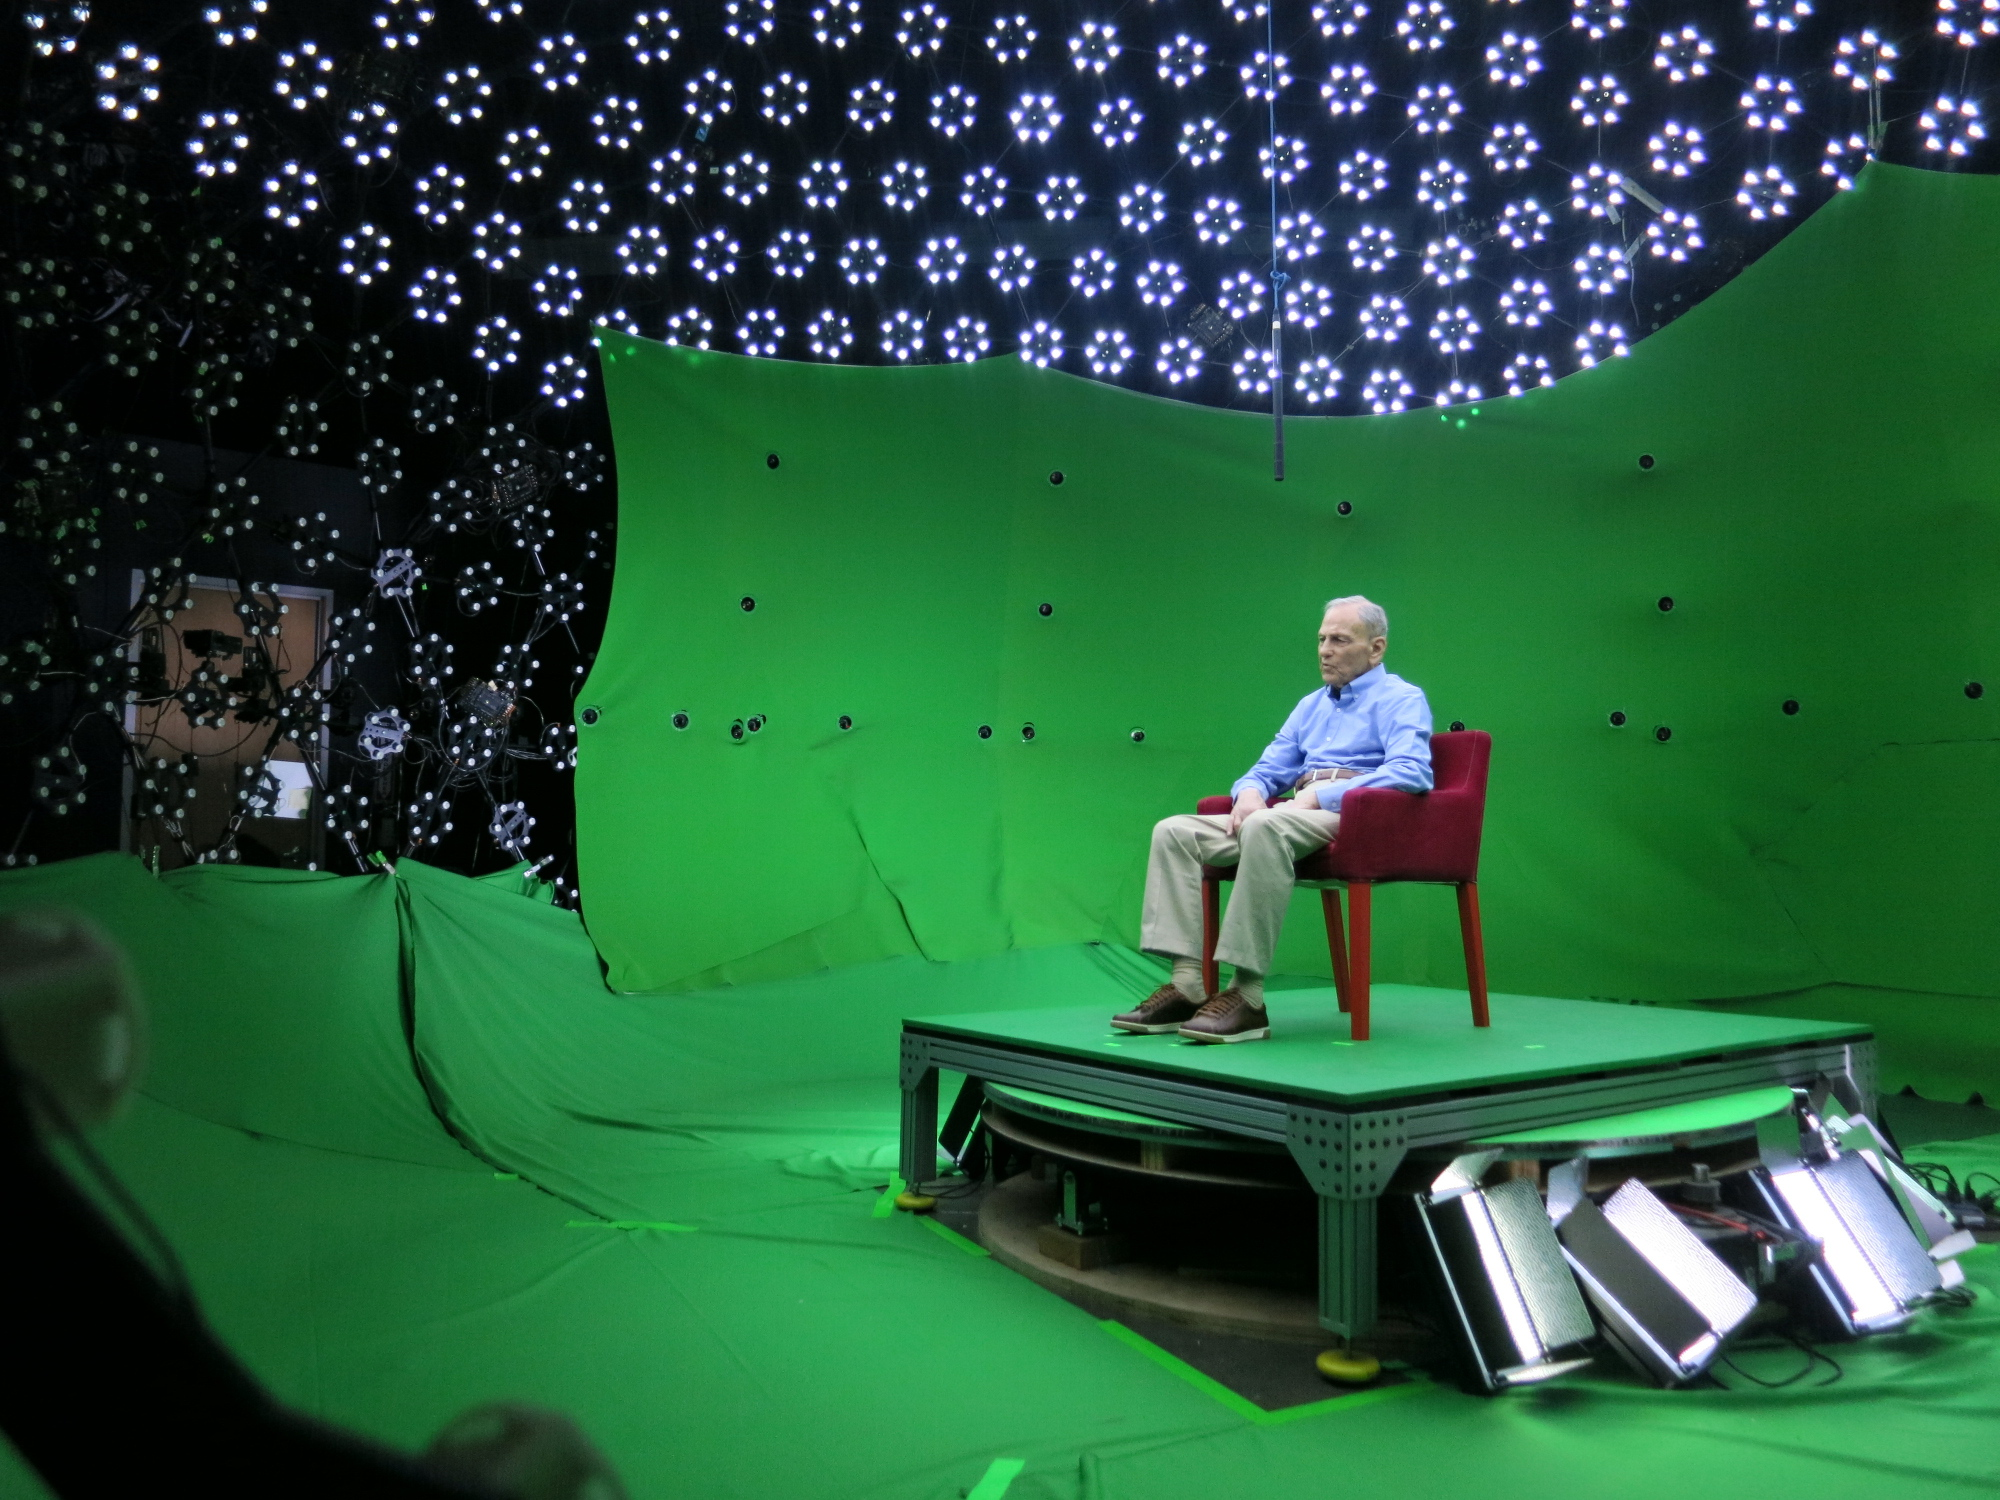 Thirteen Holocaust survivors from around the world were interviewed and recorded for the project.